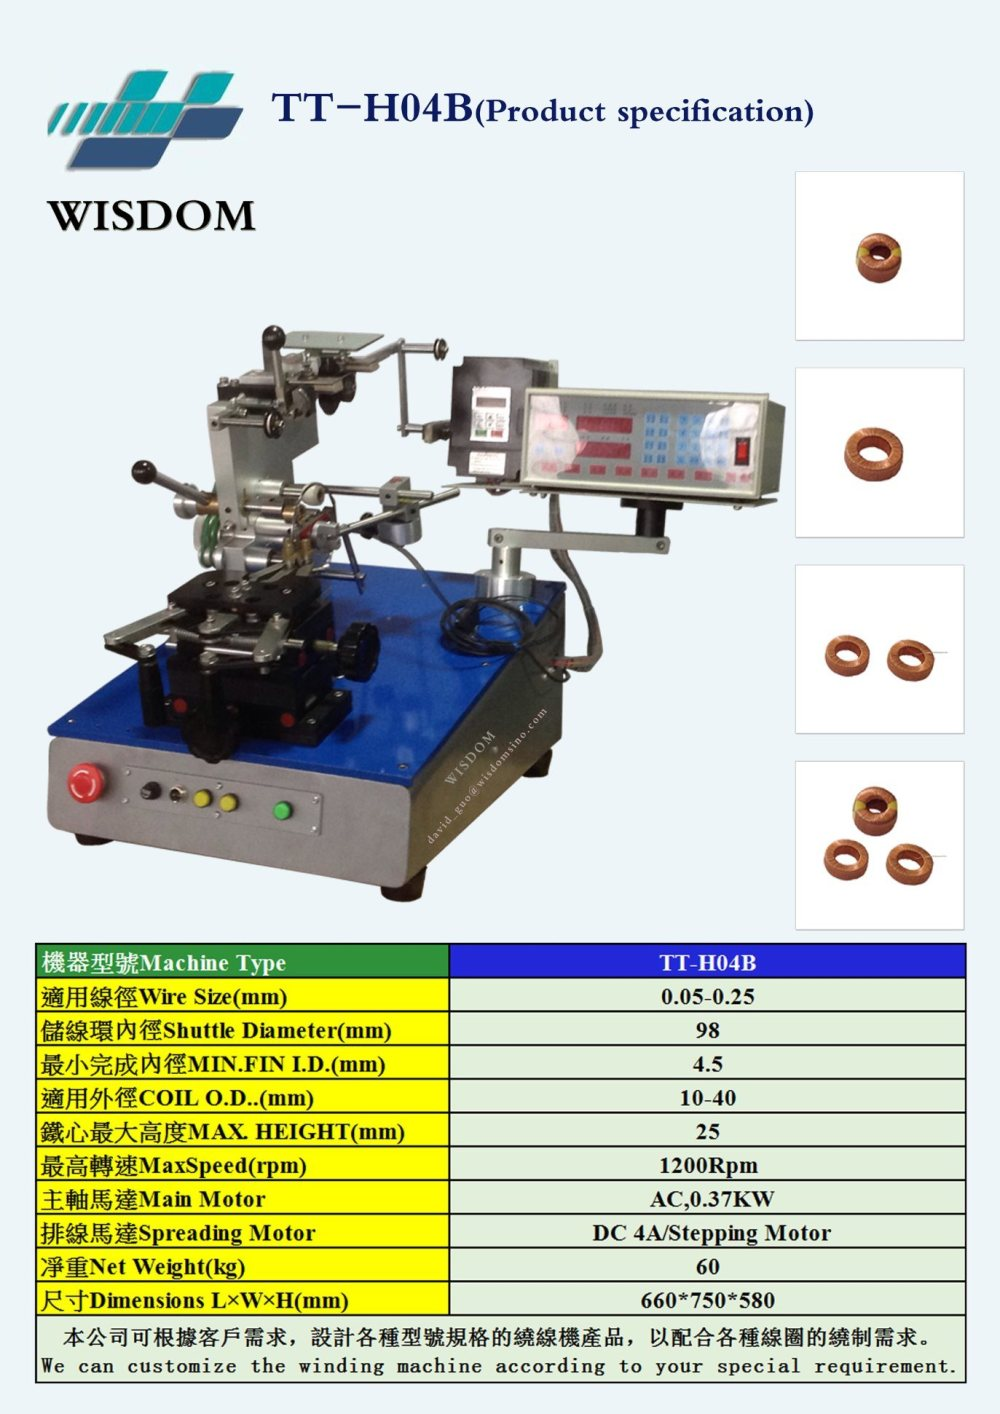 medium resolution of images of wisdom tt h06a toroidal coil winding machine for inductor relay transformer common mode choke voltage regulator